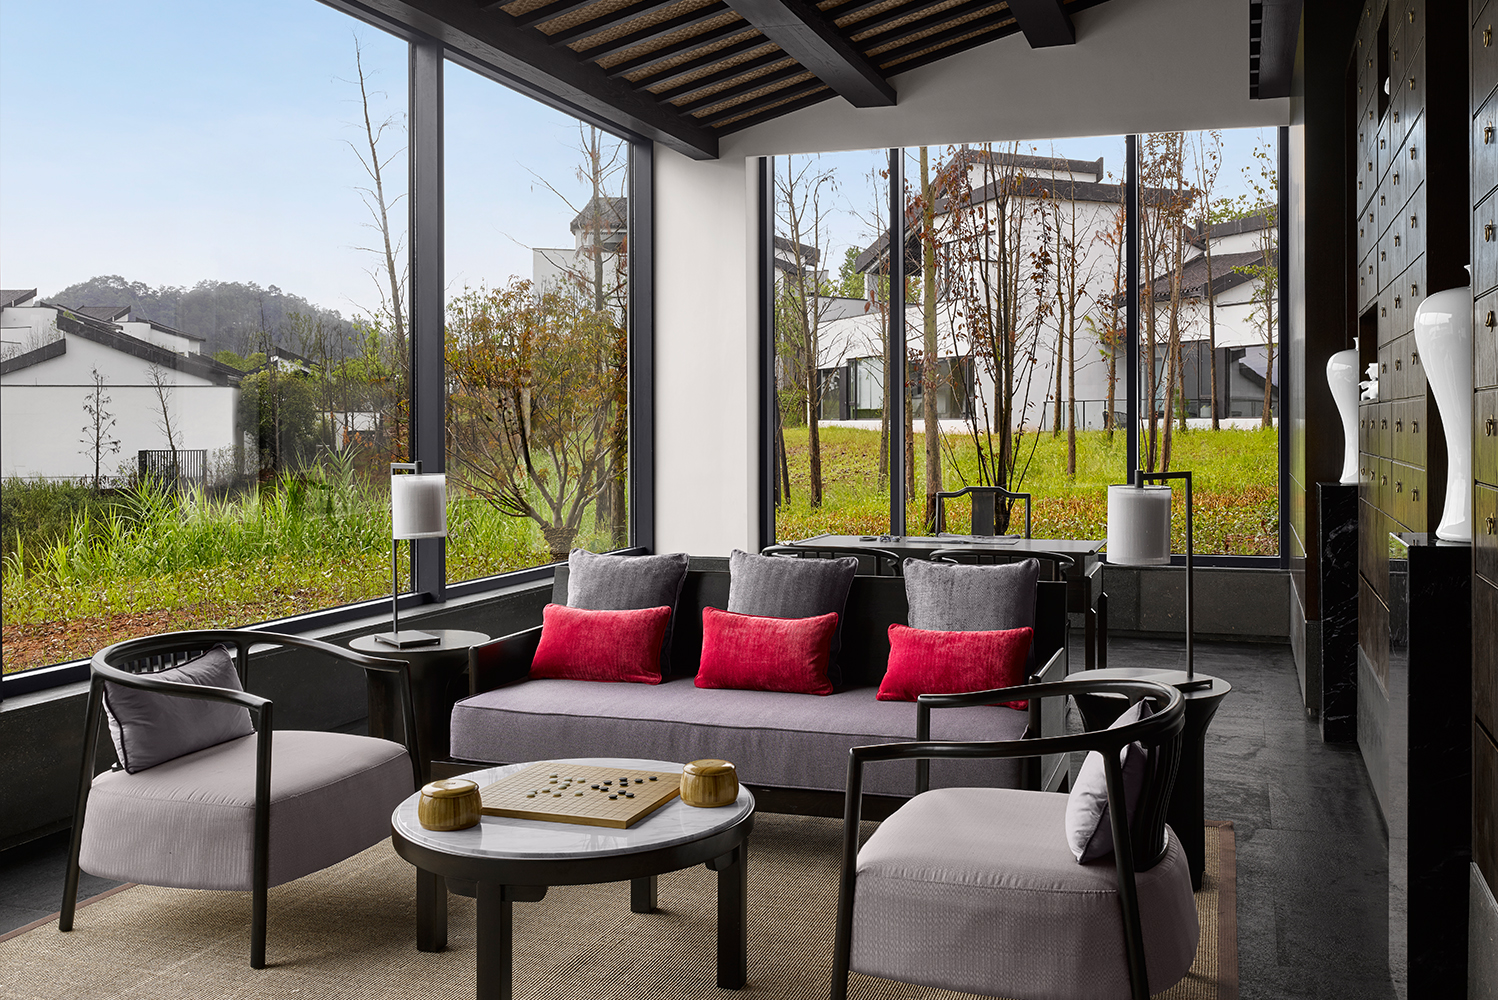 All villas have gardens and a courtyard with a balcony that faces the views of Qiandao Lake.